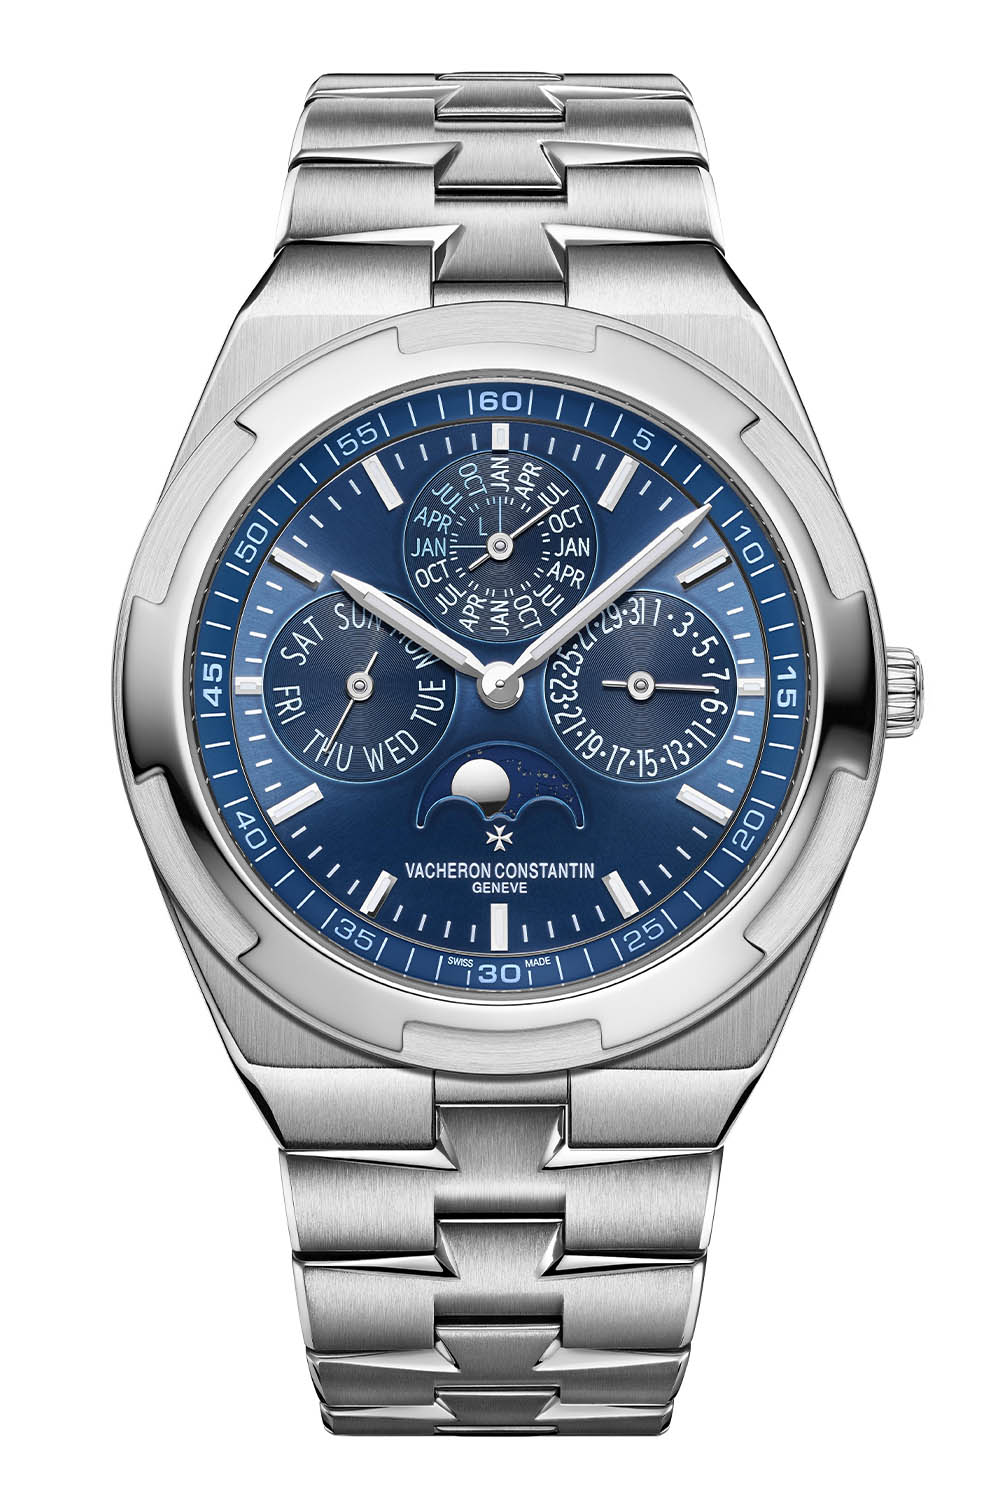 New Editions of the Vacheron Constantin Overseas Perpetual Calendar Ultra-Thin in White Gold 2021 - 7